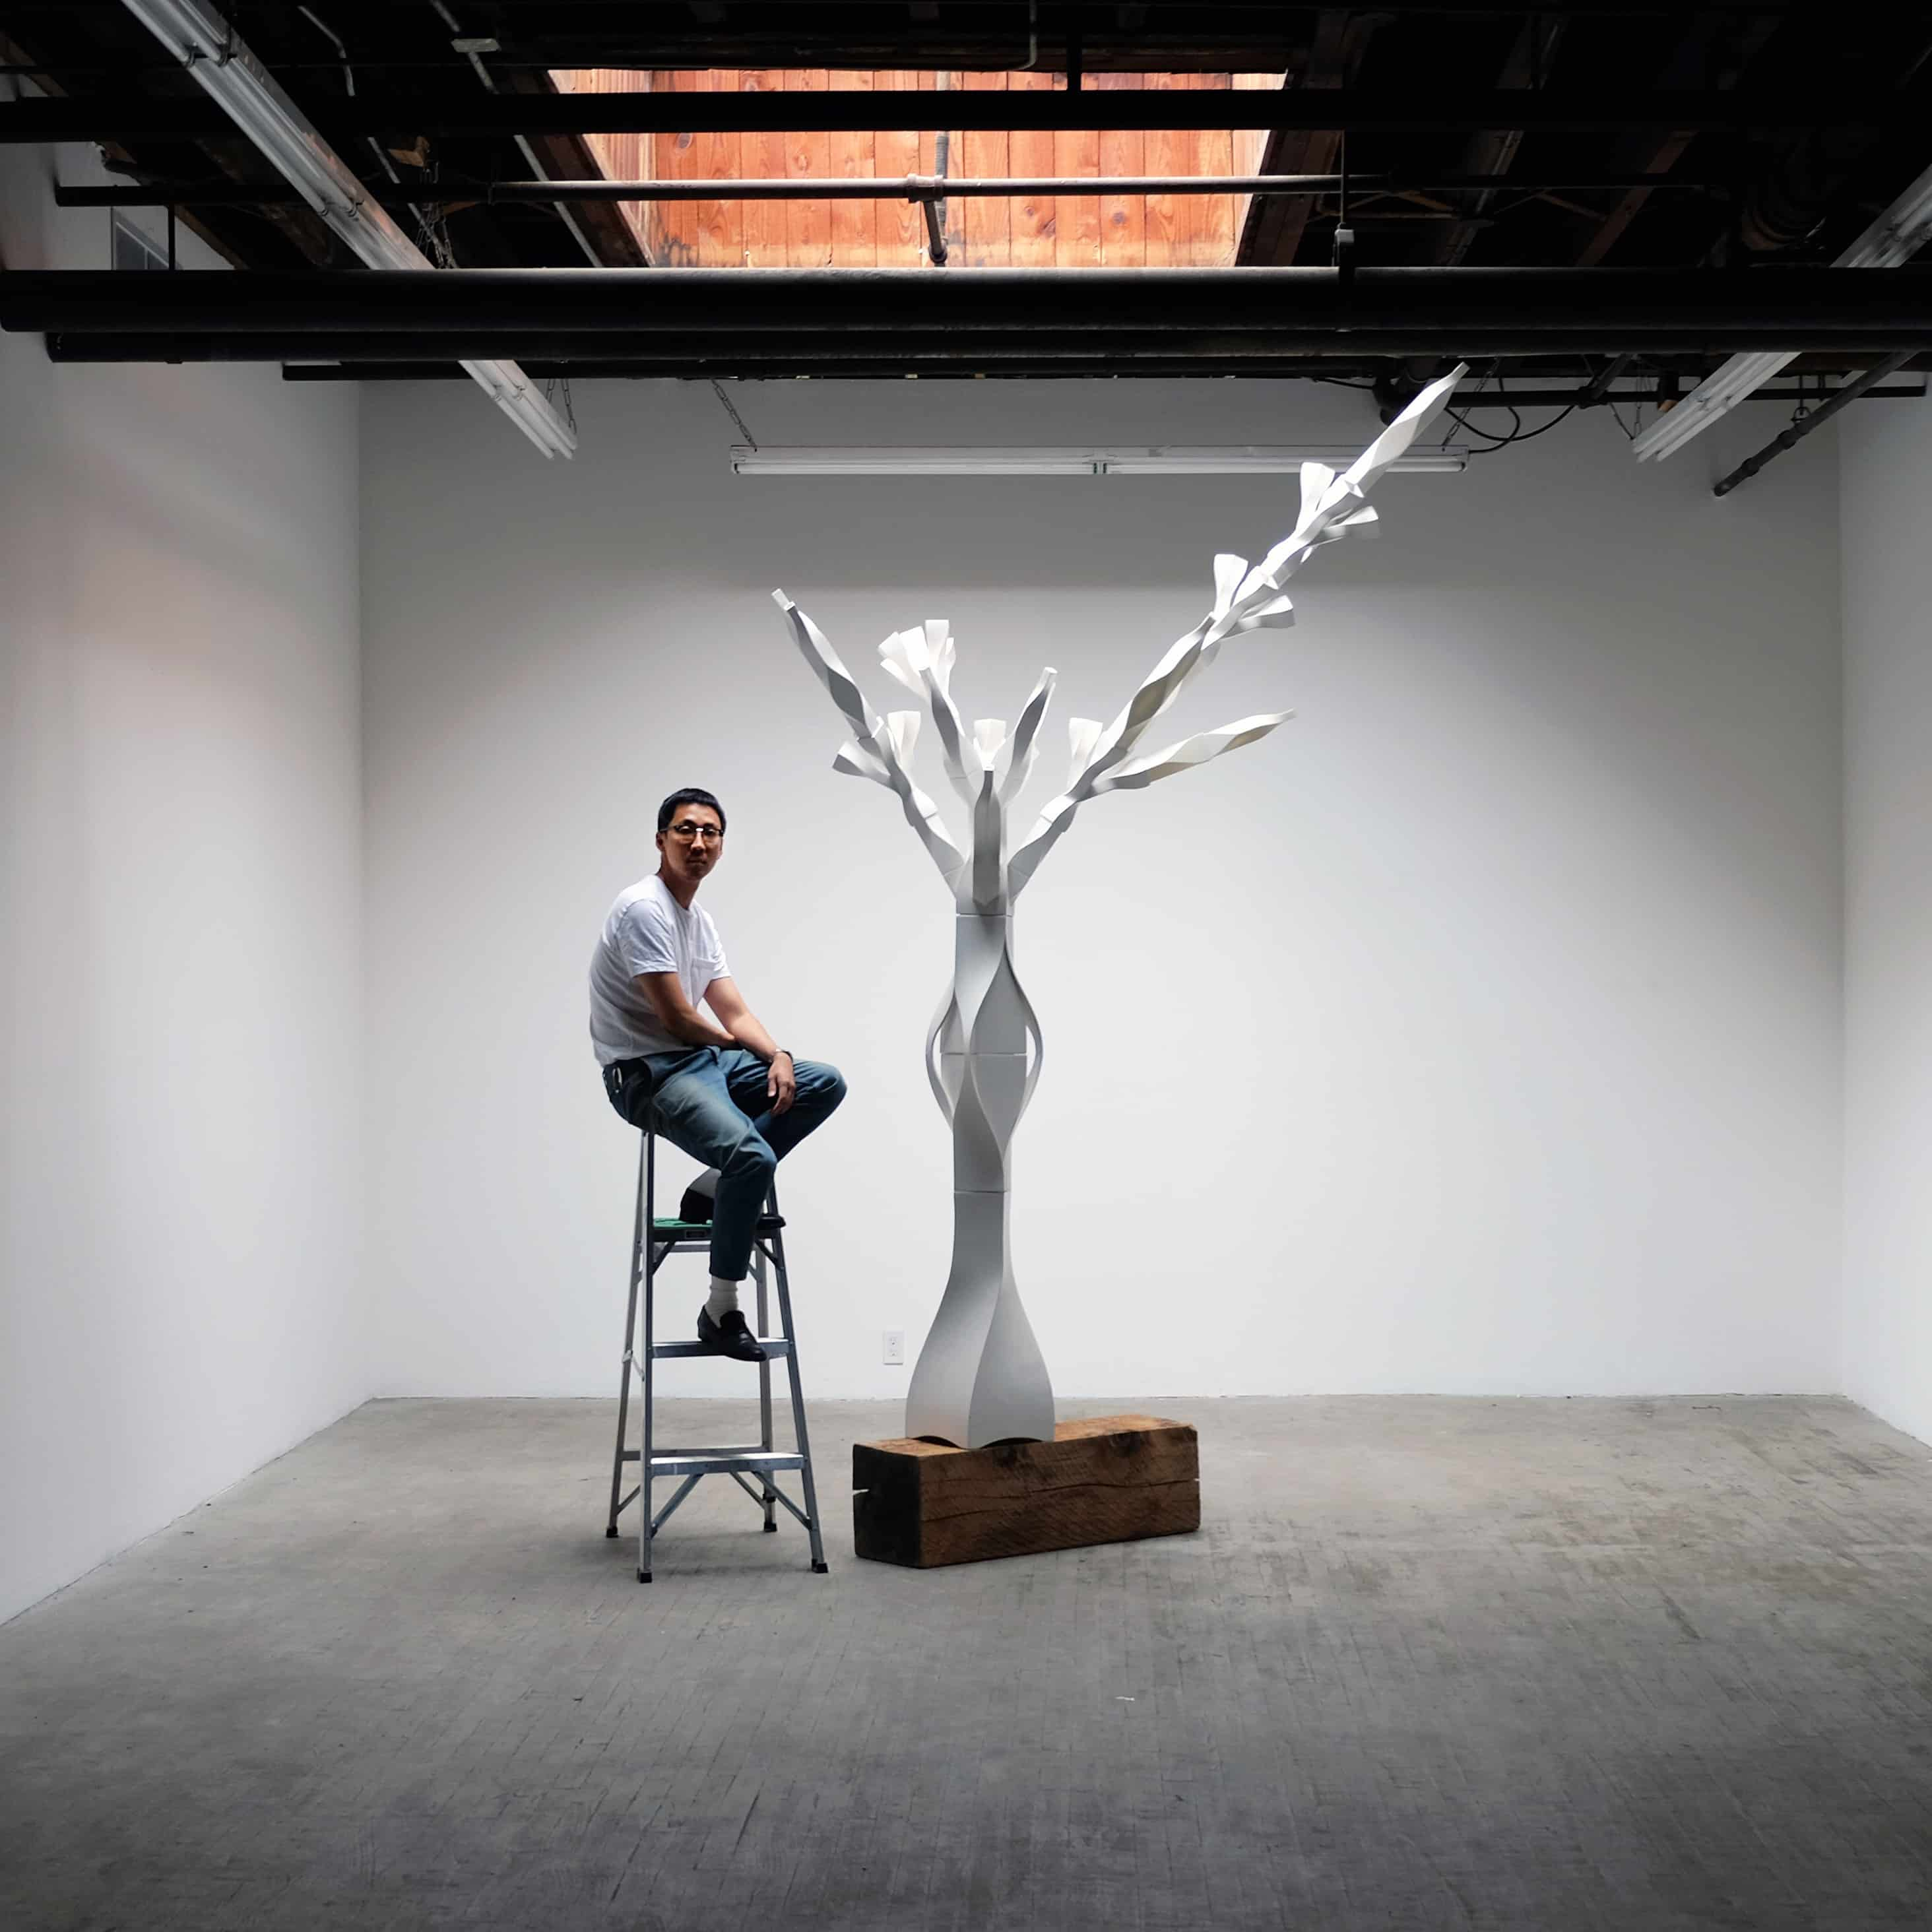 Light, Darkness and the Tree: Self Portrait Tree Brooklyn 2017, Image courtesy of Se Yoon Park